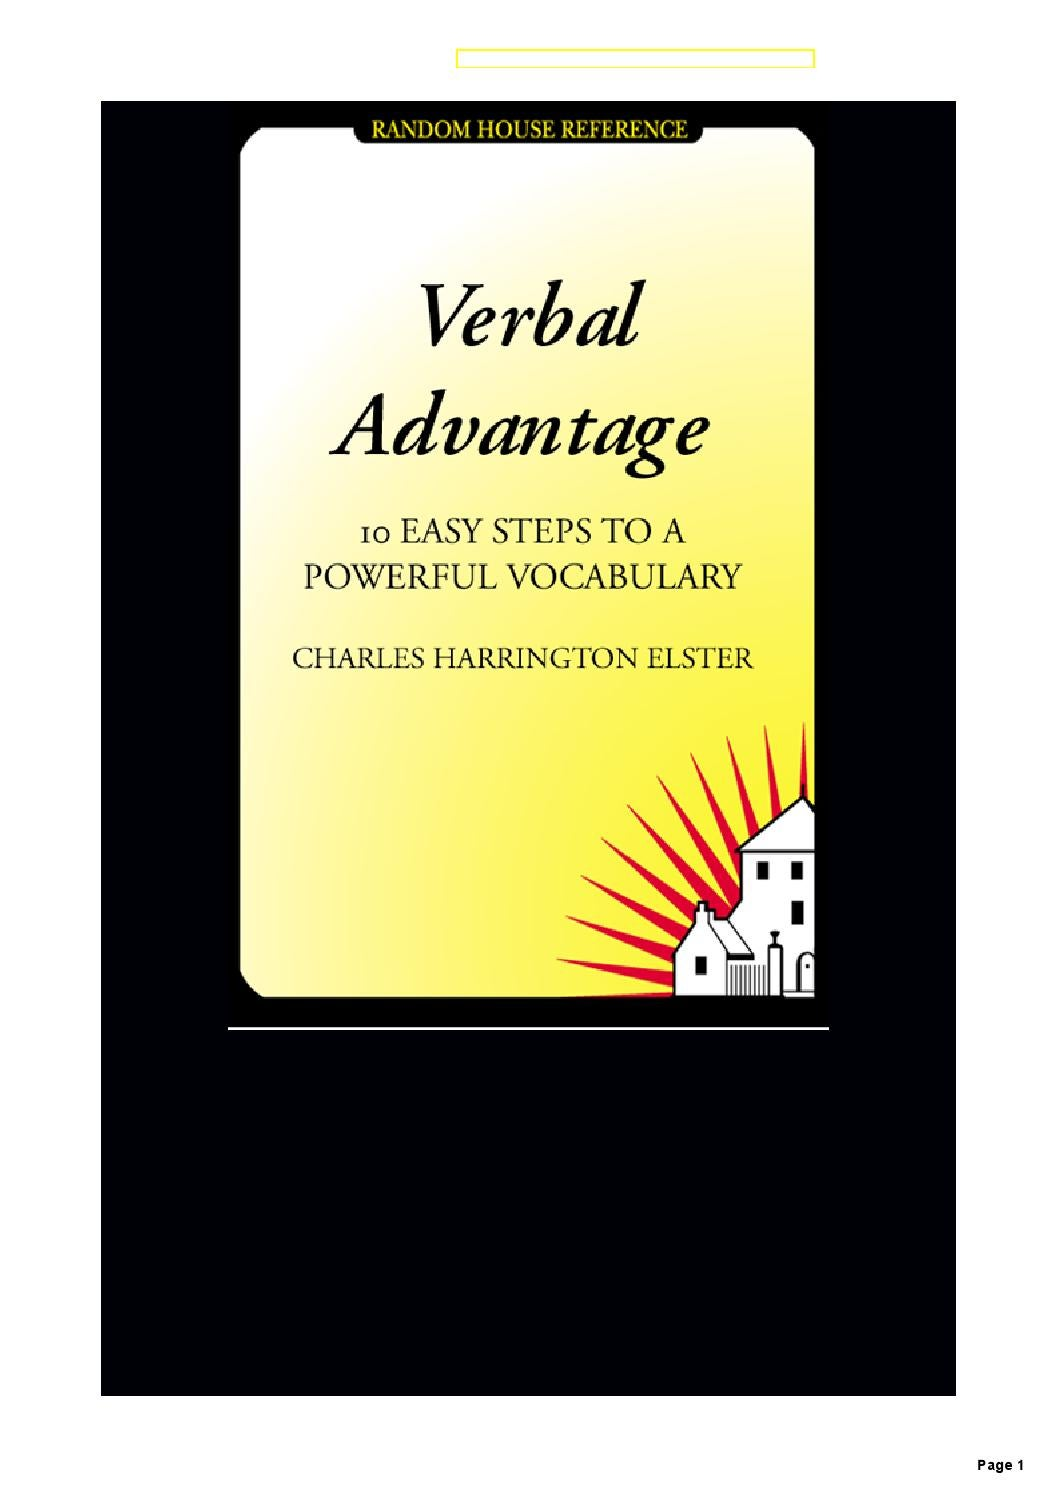 Verbal Advantage 10 Easy Steps To A Powerful Vocabulary By Ron De